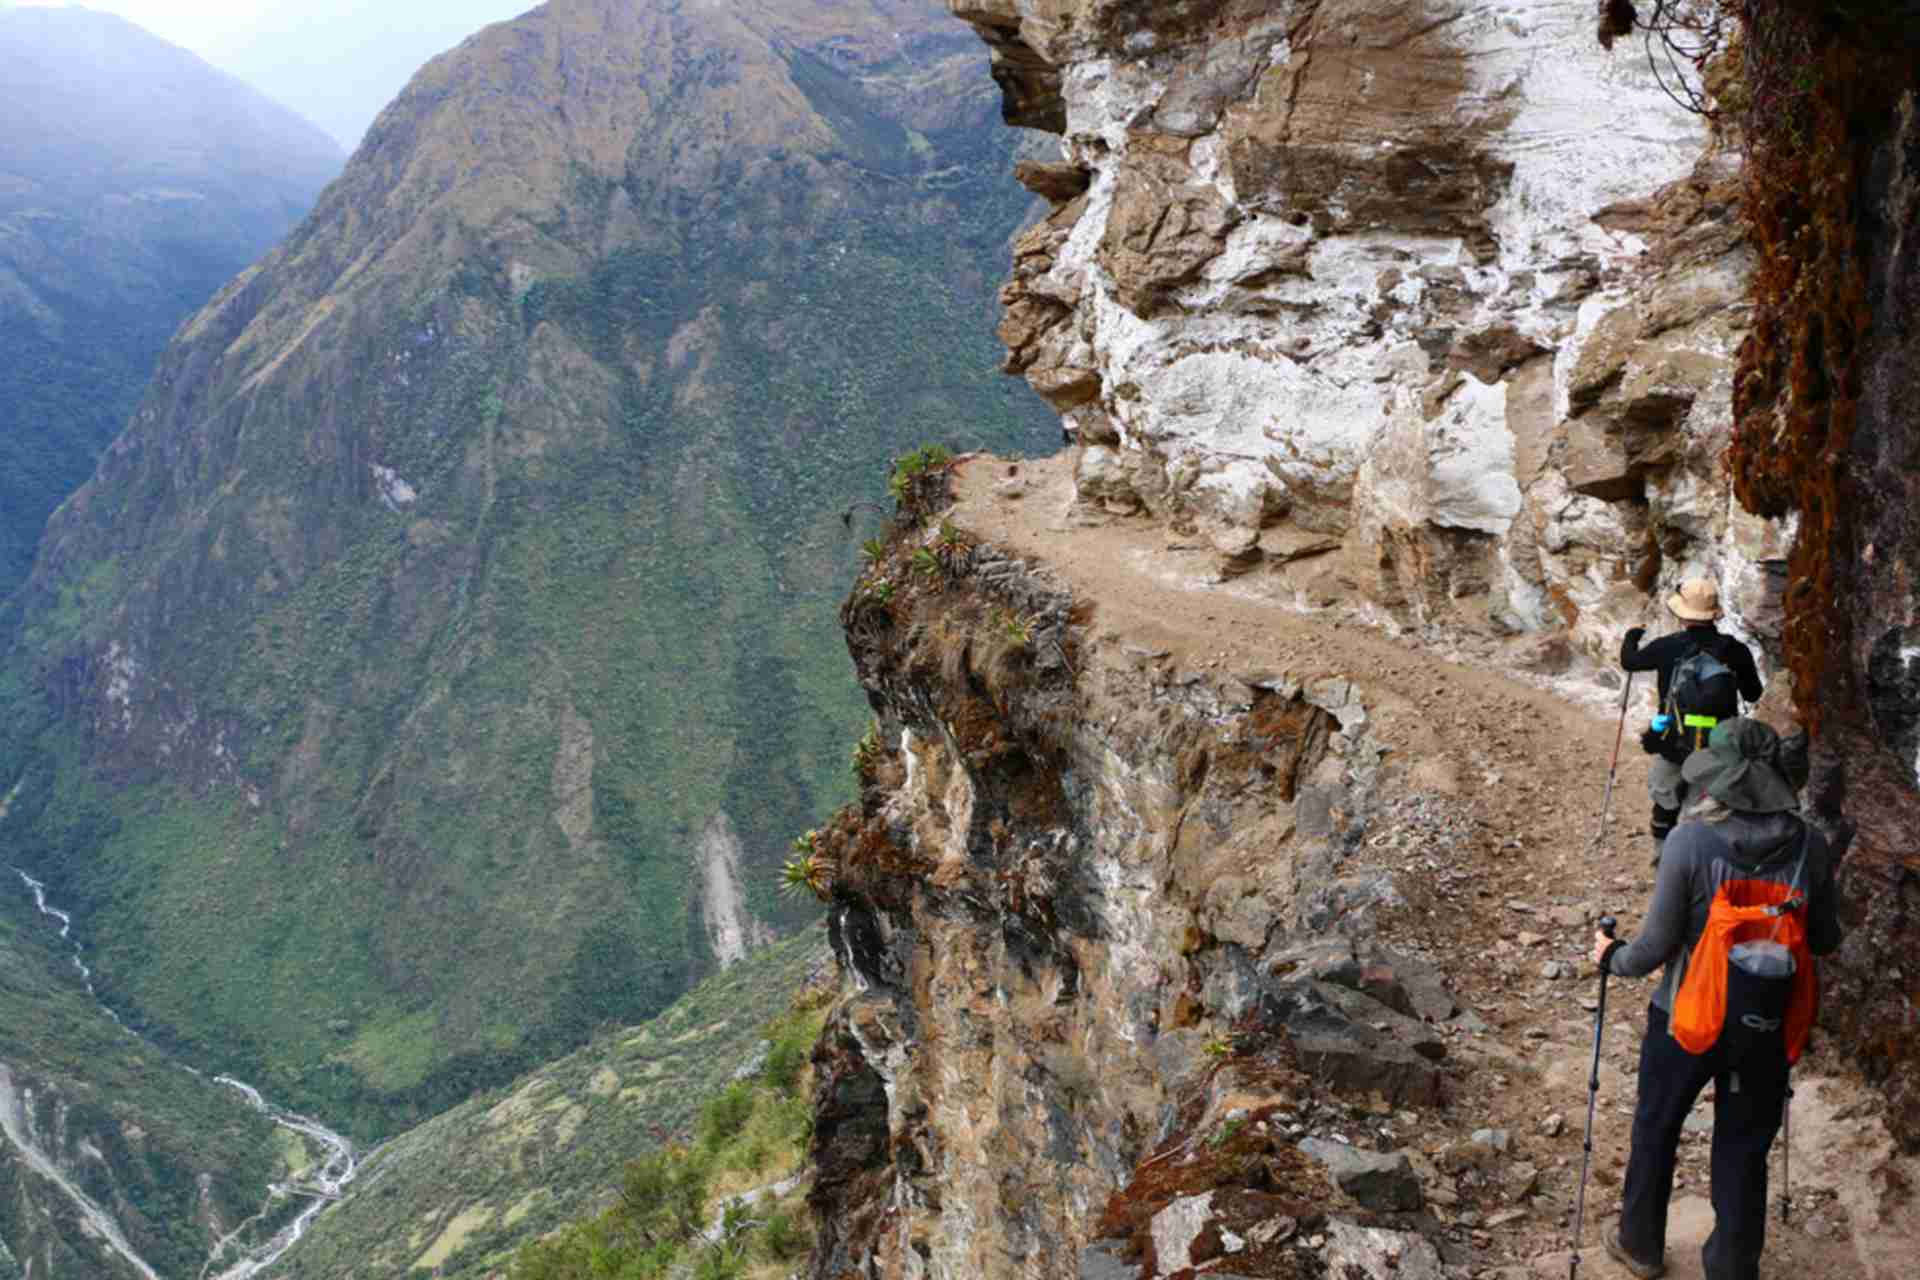 Inca Trail Salkantay Trek 4 days to Machu Picchu - Inca Trail Salkantay Trek